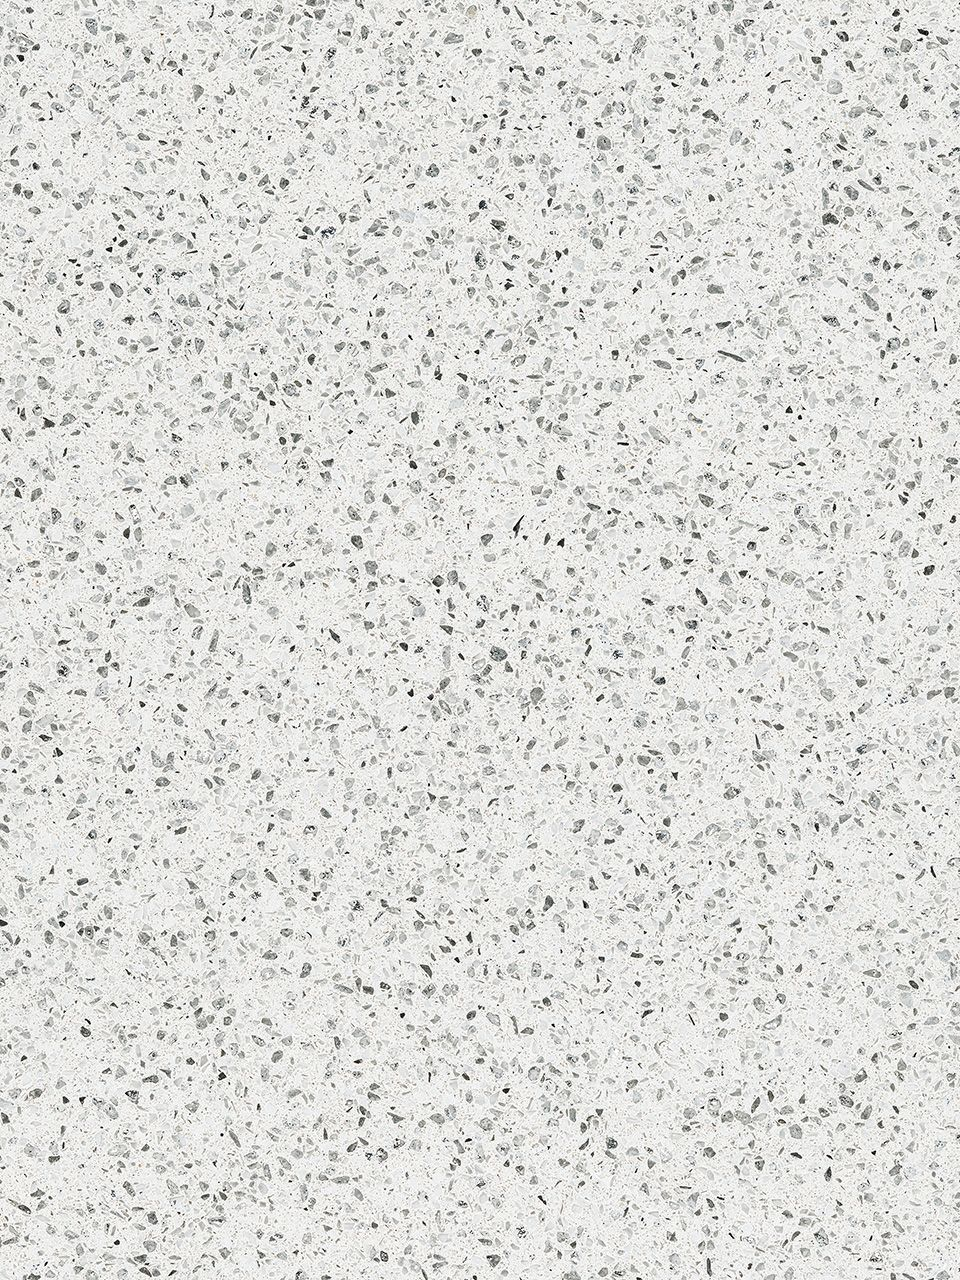 countertop texture seamless the image